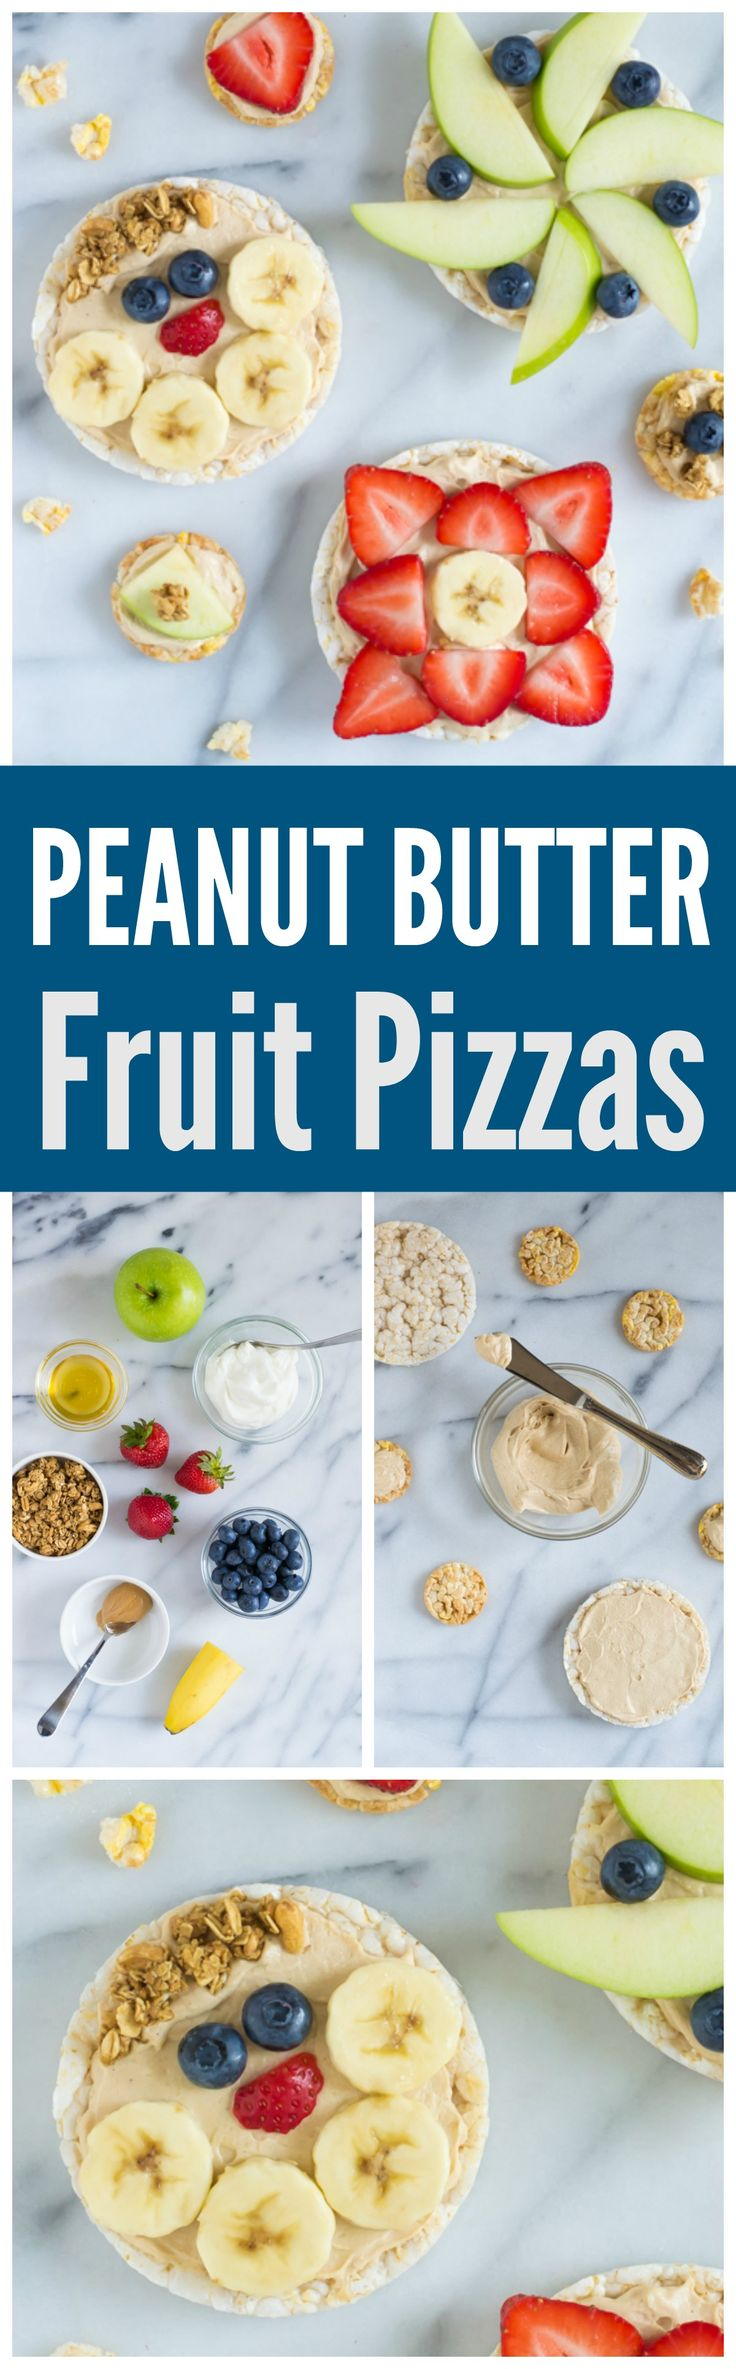 "Peanut Butter Healthy Fruit Pizzas. Kids LOVE these! Rice cakes spread with a creamy peanut butter yogurt ""sauce,"" topped with fresh fruit. A perfect healthy snack for kids. Great for lunchboxes and healthy after school snacks too! Recipe at wellplated.com @wellplated #backtoschool #healthysnacks"